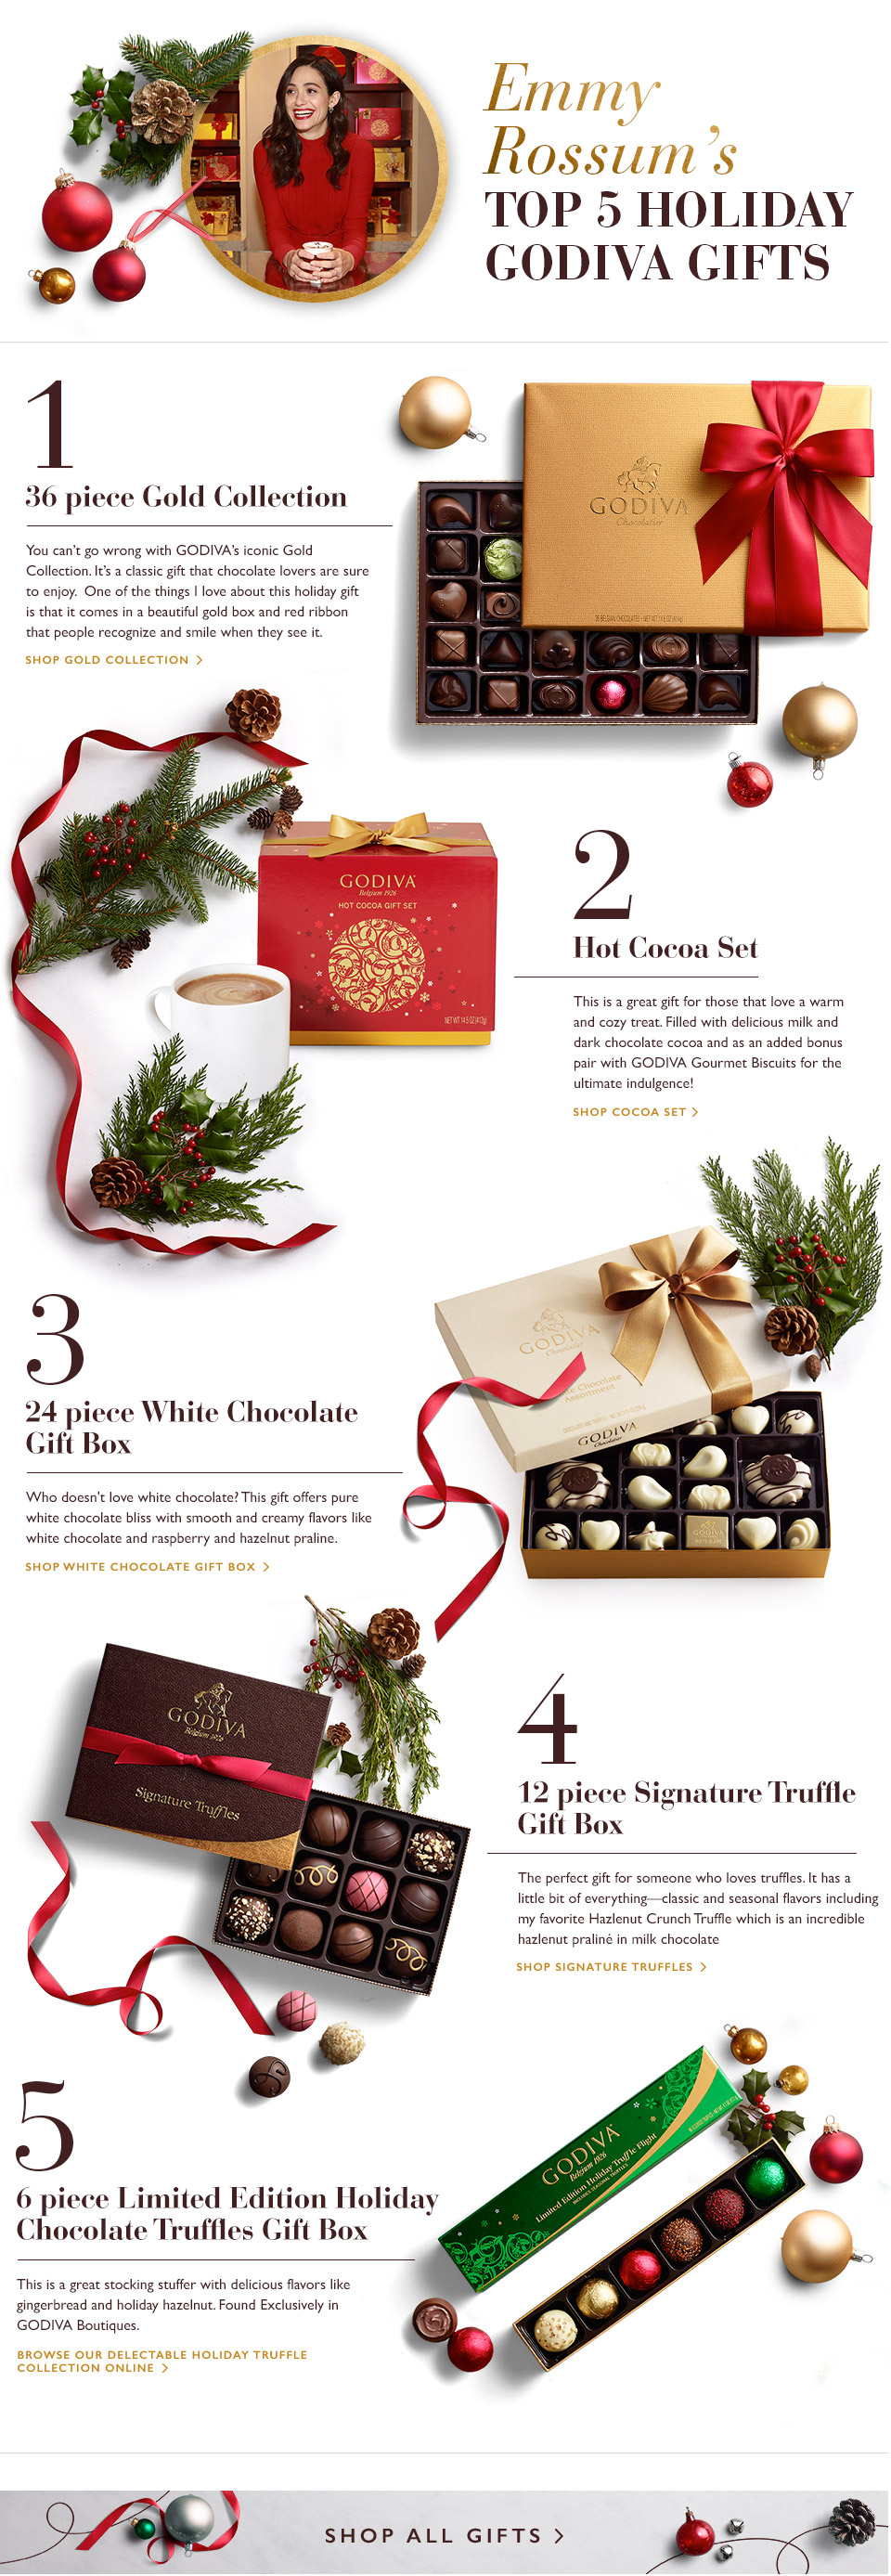 Emmy Rossum's Top 5 Holiday Gifts from GODIVA